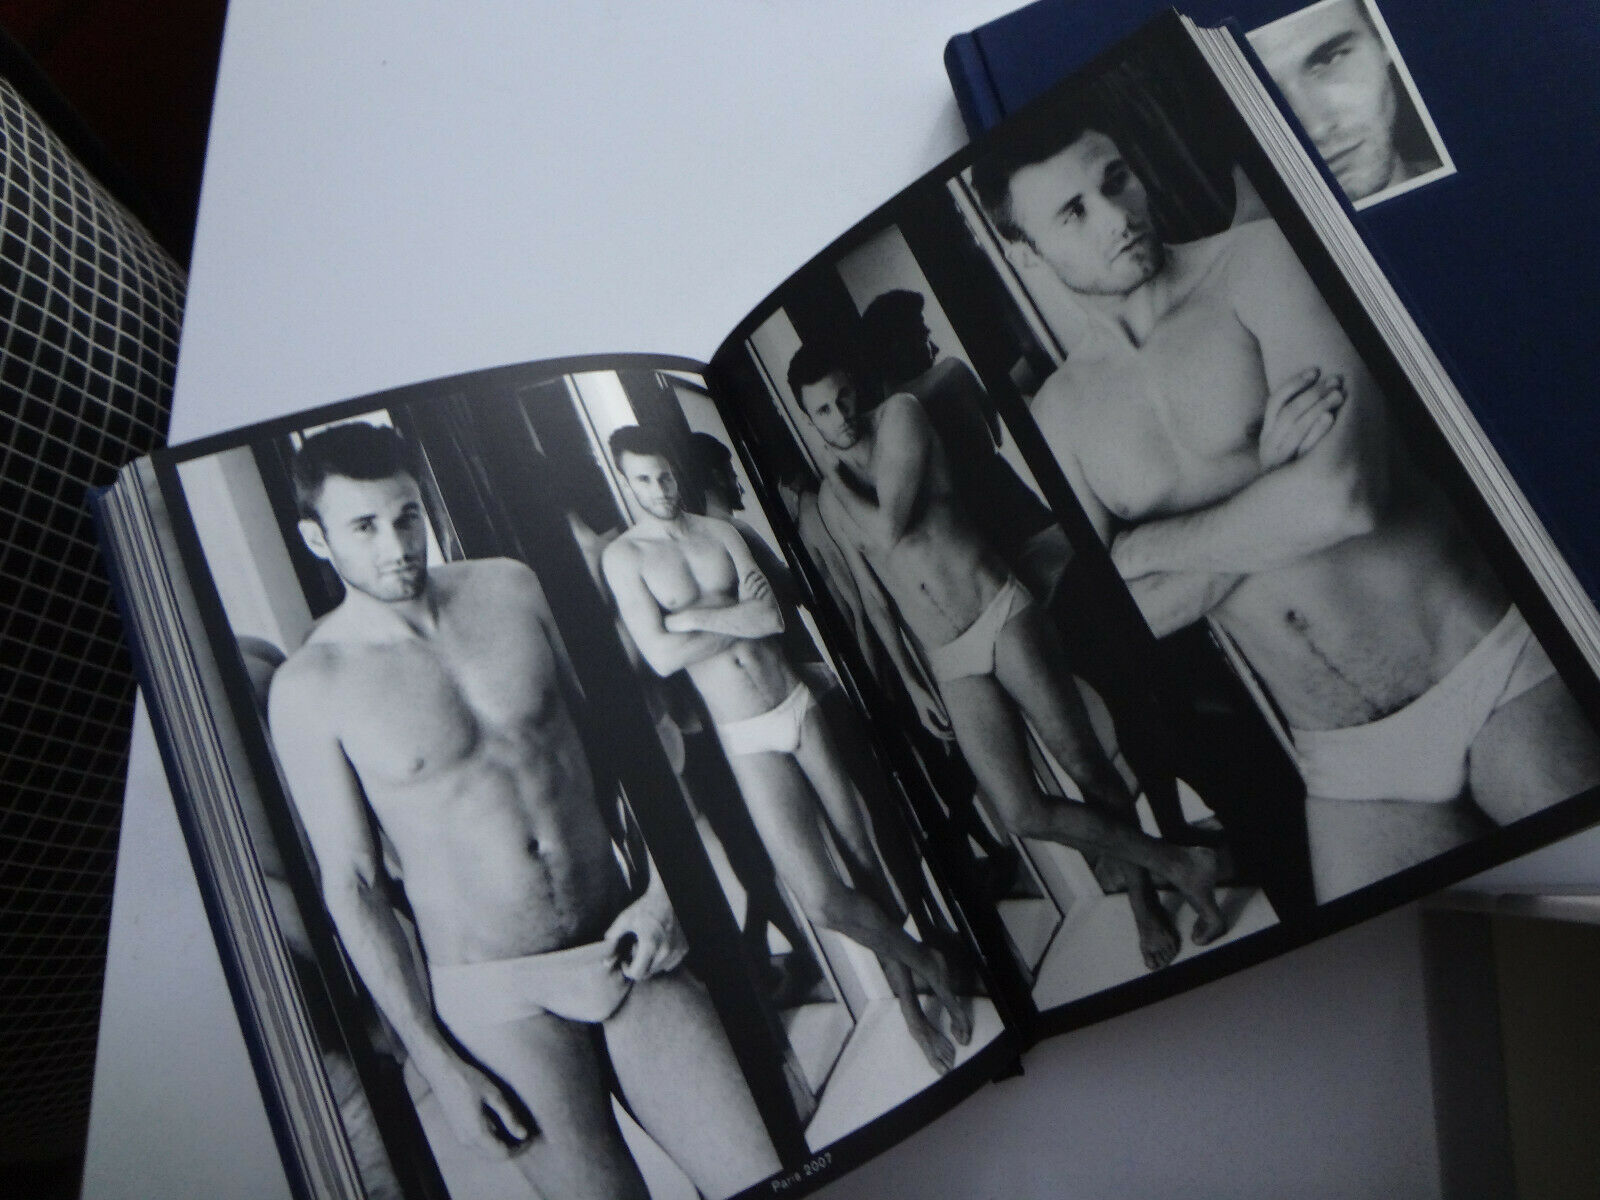 MINT 1ST EDITION KARL LAGERFELD METAMORPHOSES NUDES FASHION PHOTOGRAPHY 4 BOOKS 4